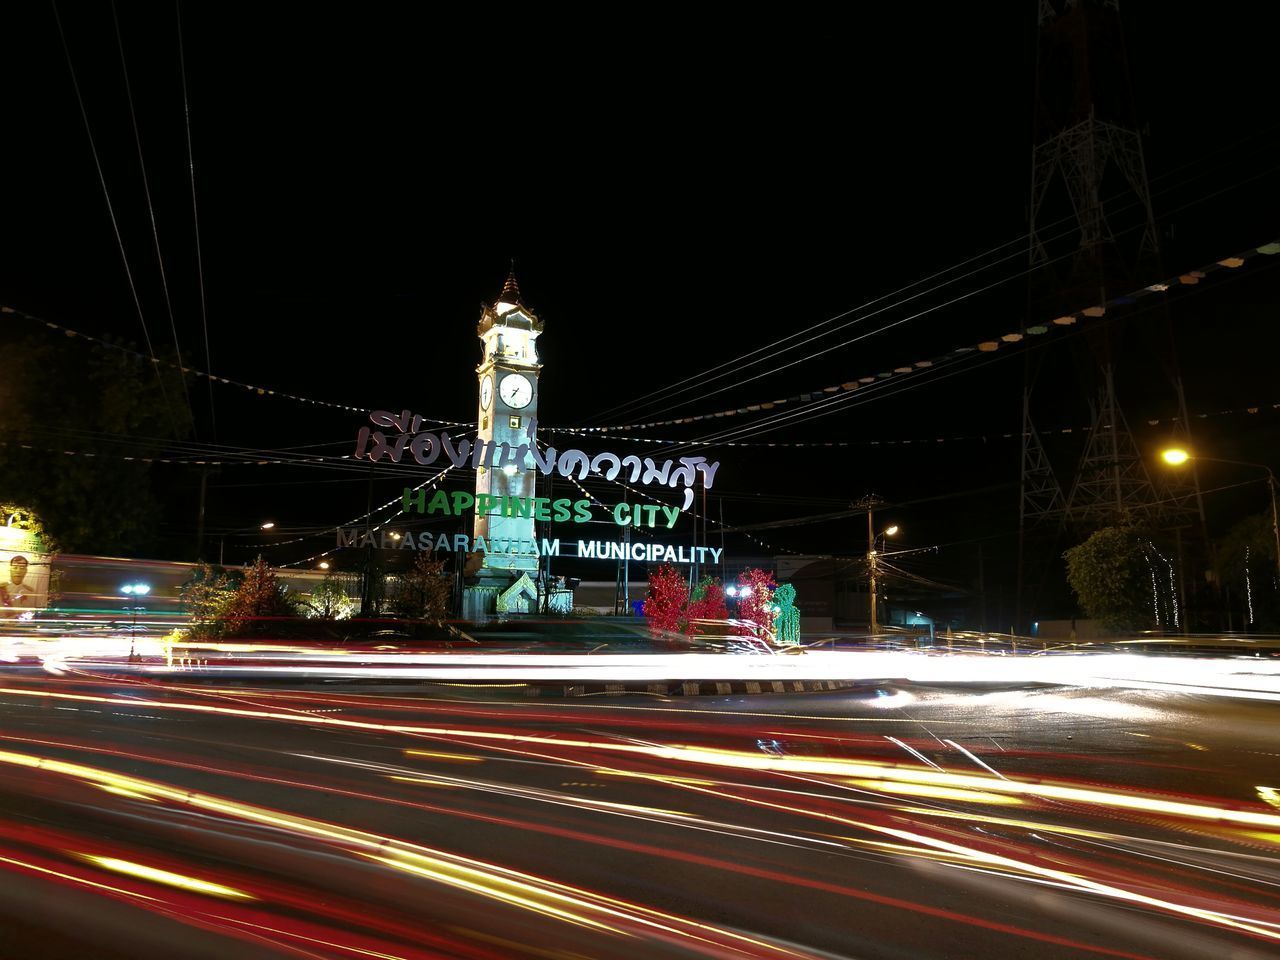 light trail, speed, long exposure, motion, night, blurred motion, illuminated, high street, transportation, urban scene, road, architecture, outdoors, building exterior, no people, clear sky, city